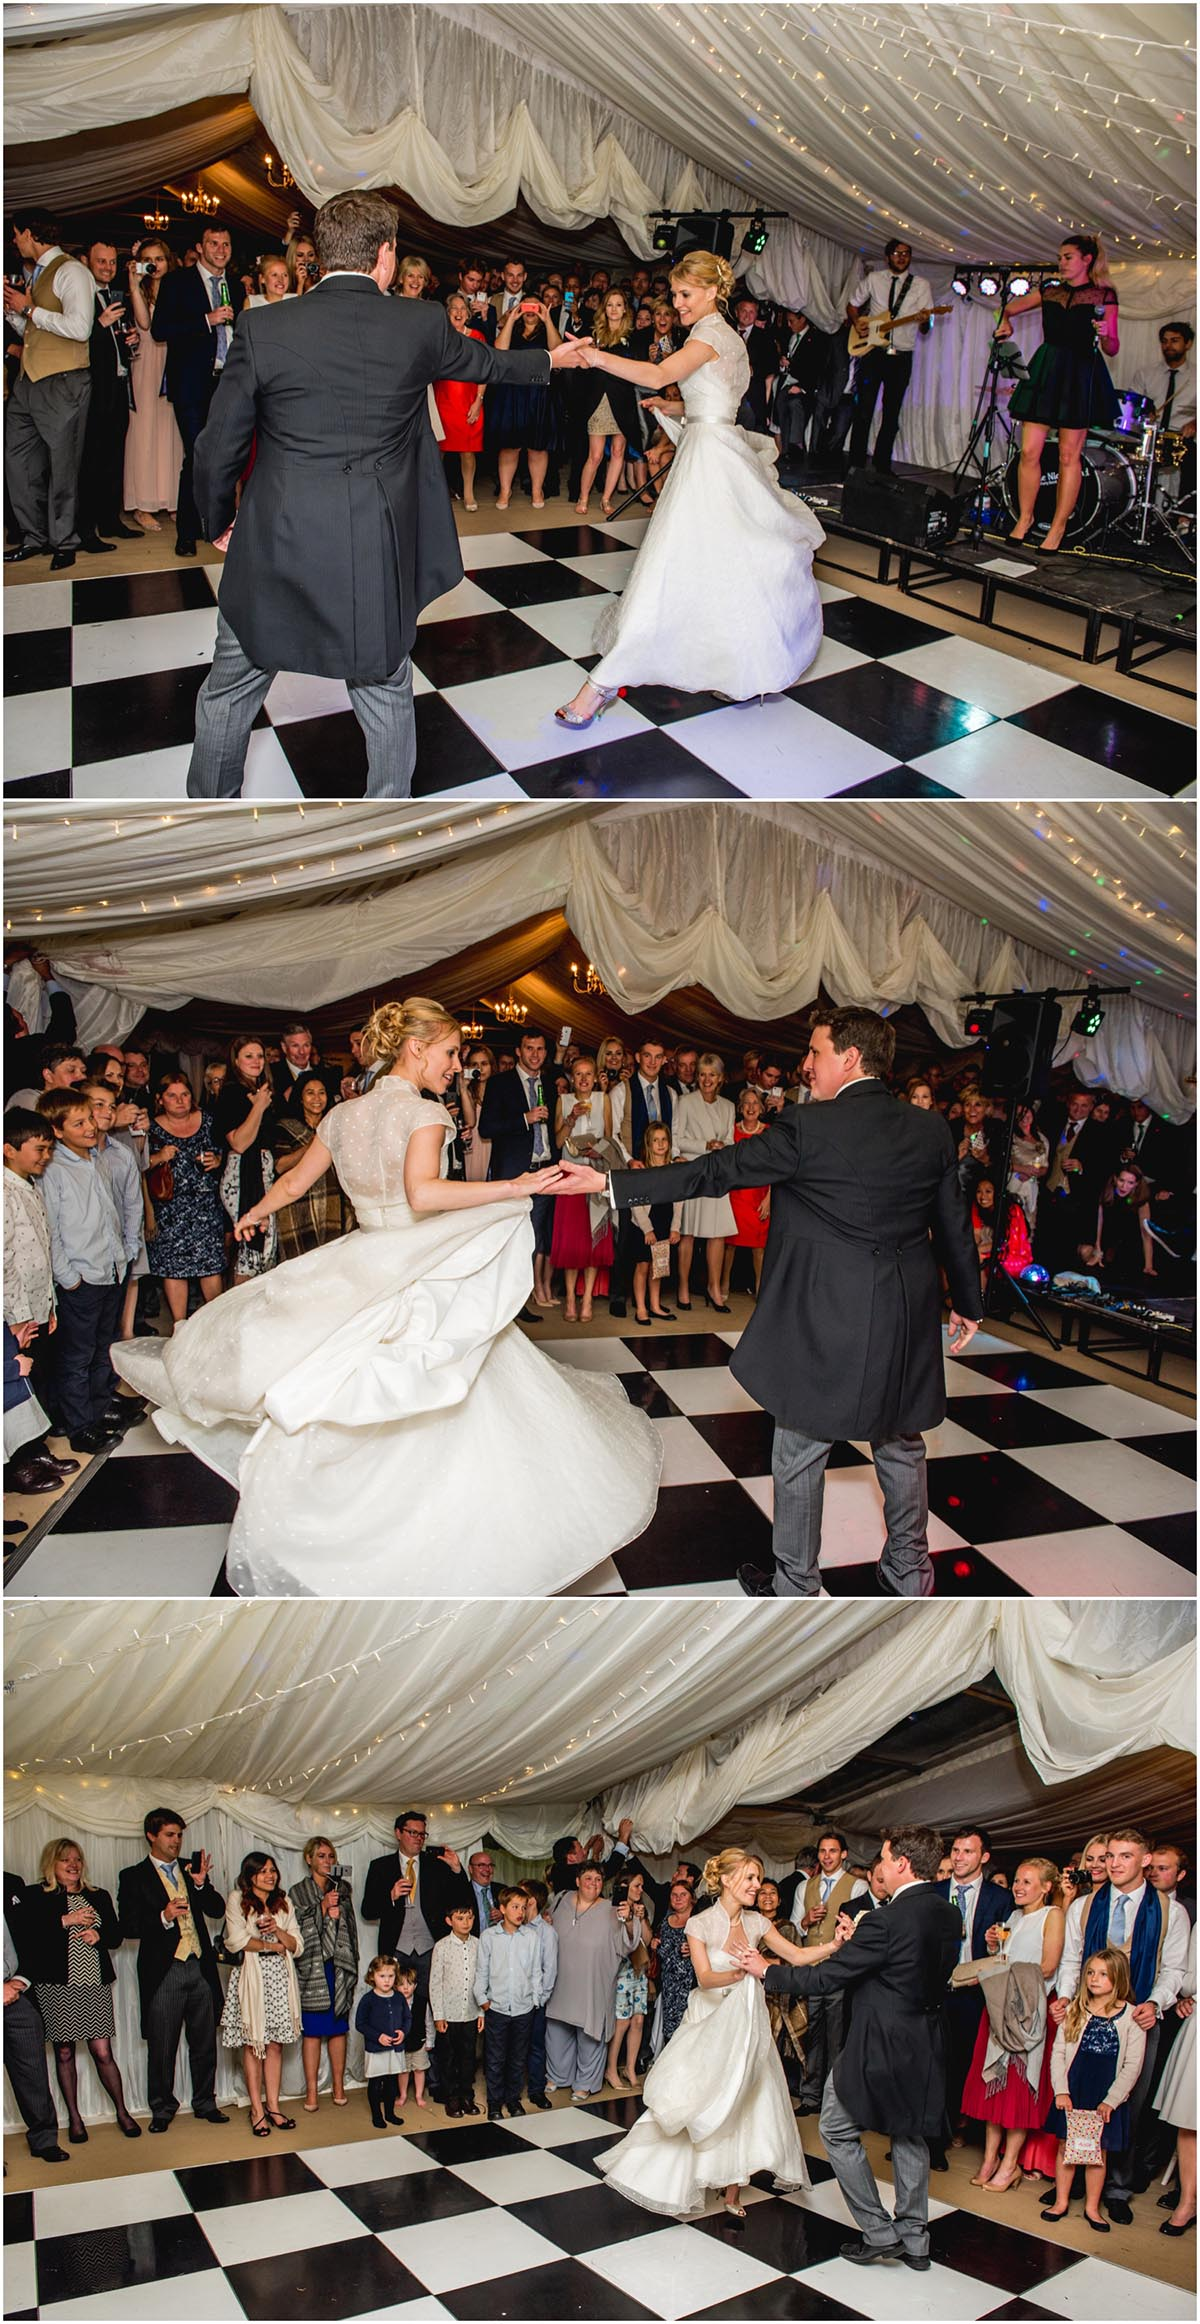 Susie and Ed's Dorset Wedding in Alton Pancras, Dorset, near Cerne Abbas, By Lisa Carpenter Photography, West Midlands, Birmingham based photographer, first dance, choreographed dance